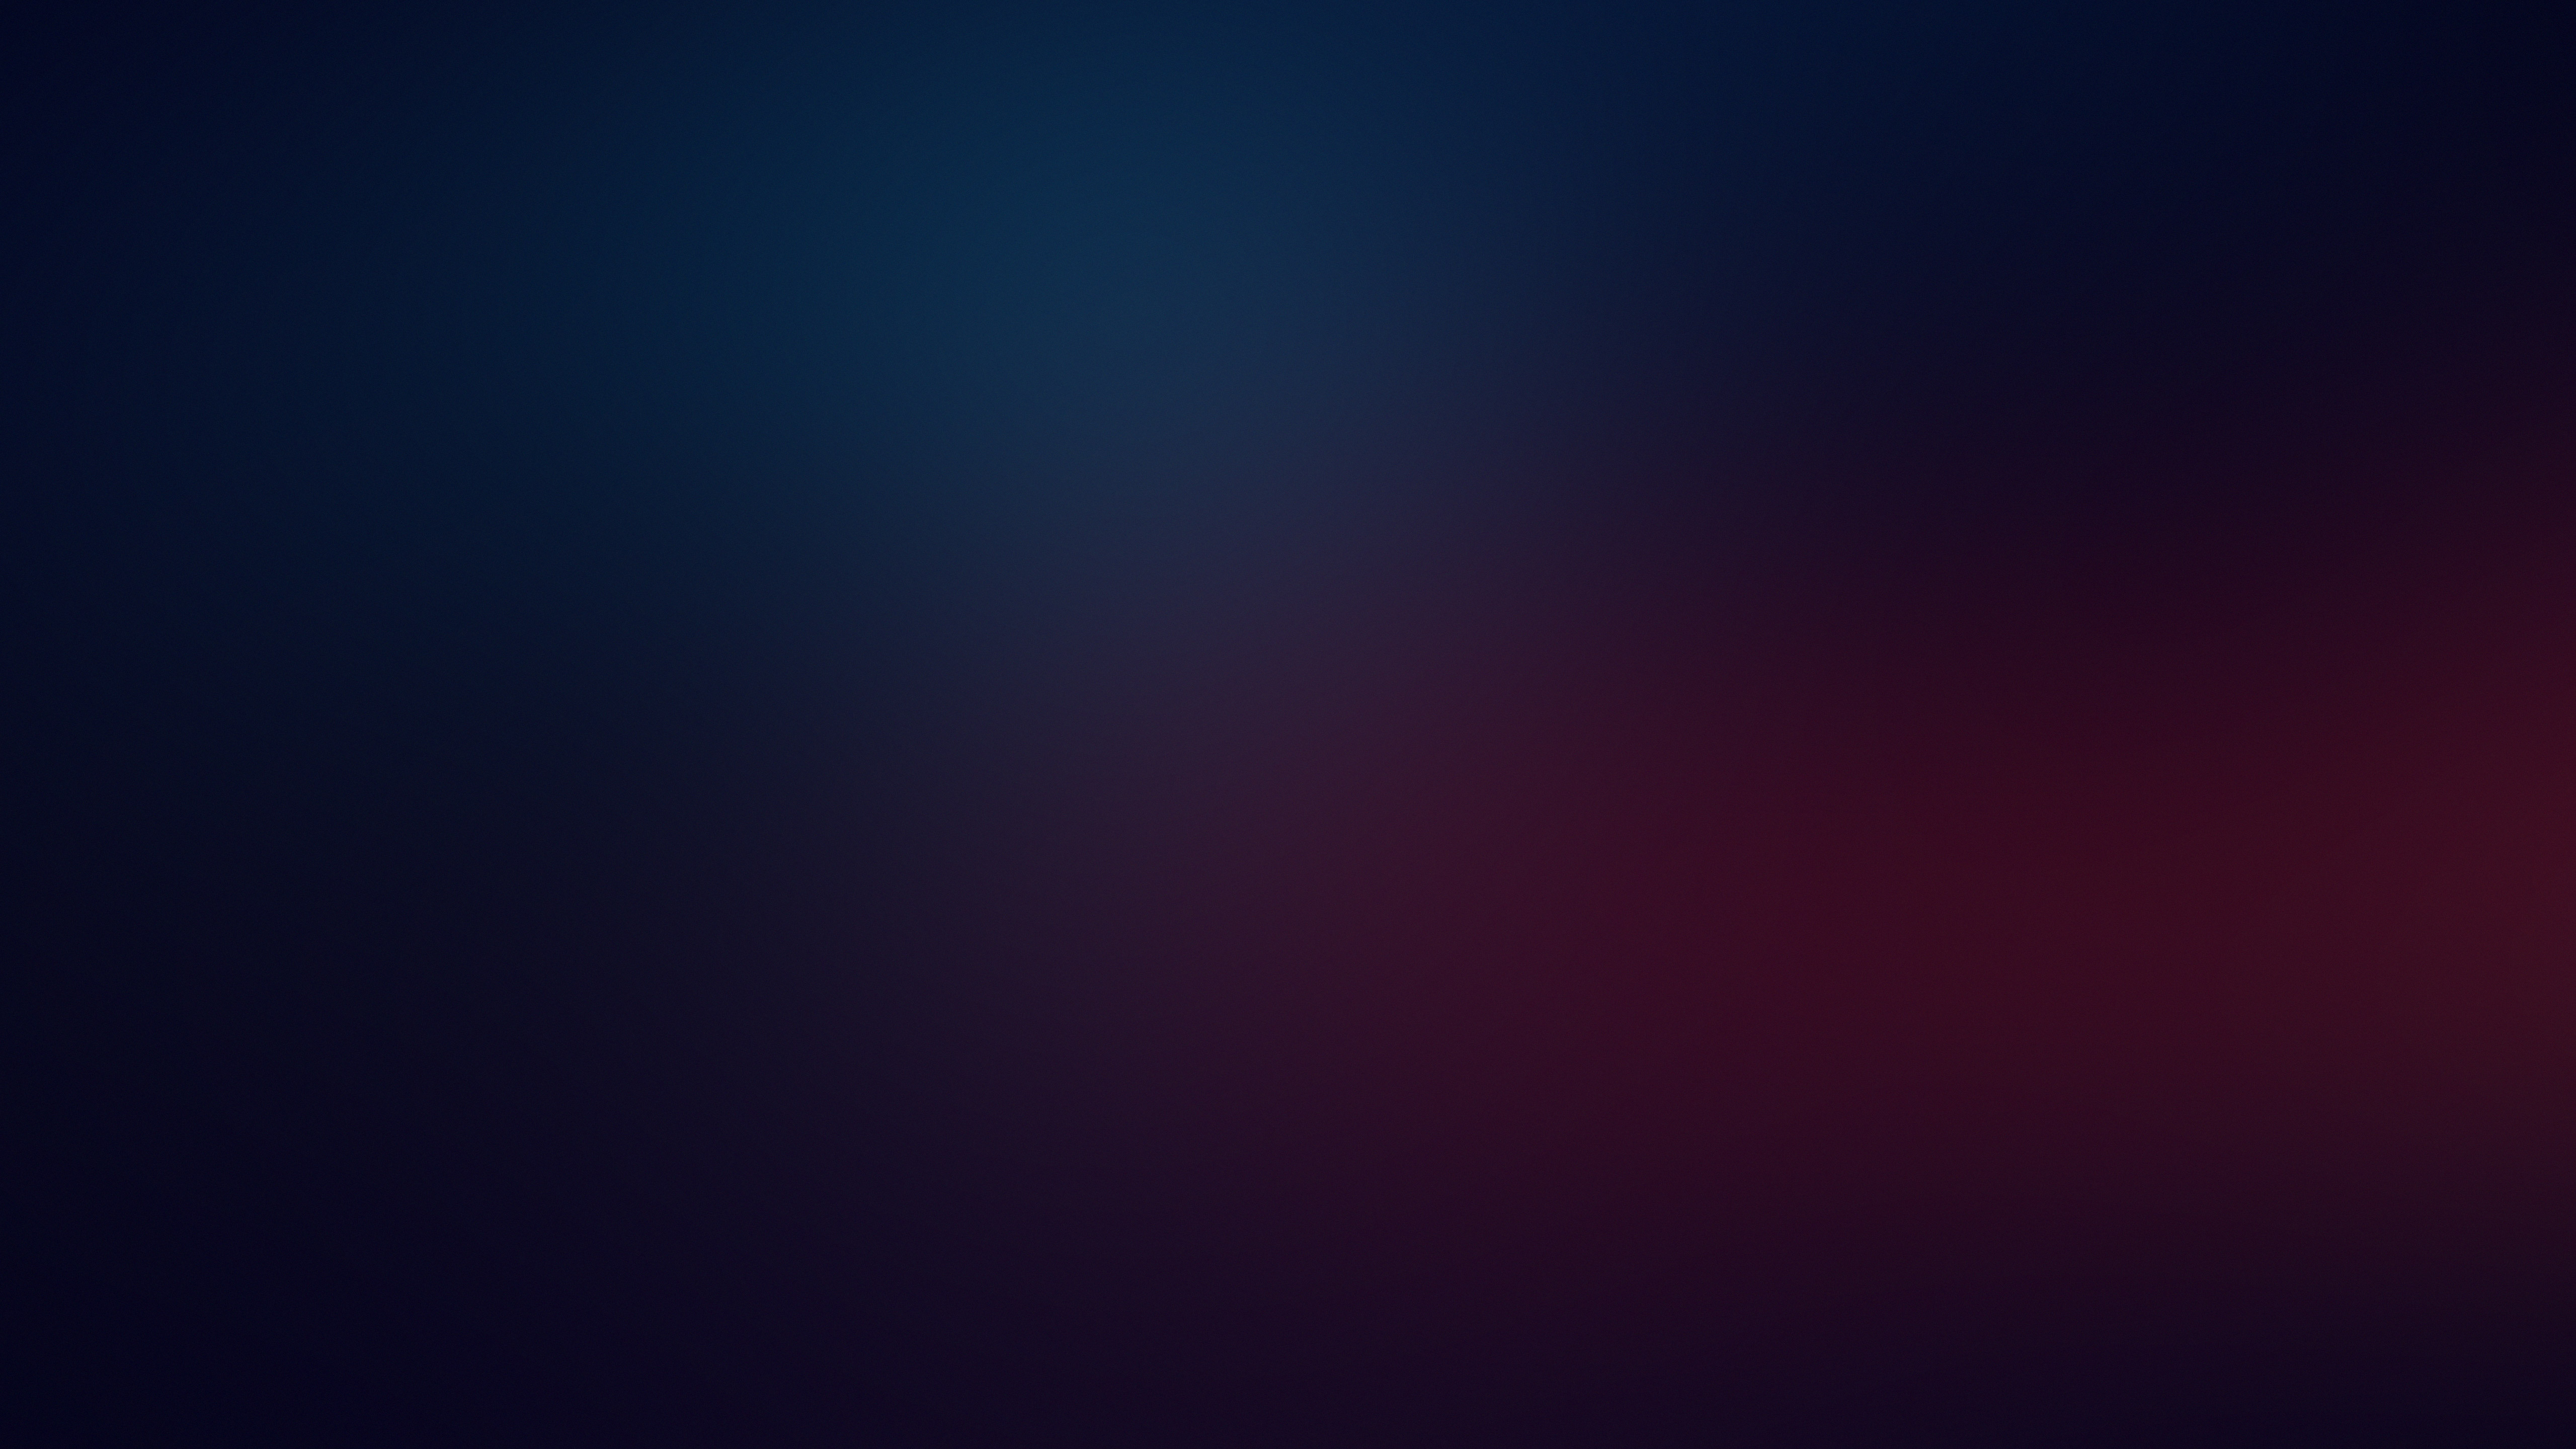 Dark Blur Abstract 4k Hd Abstract 4k Wallpapers Images